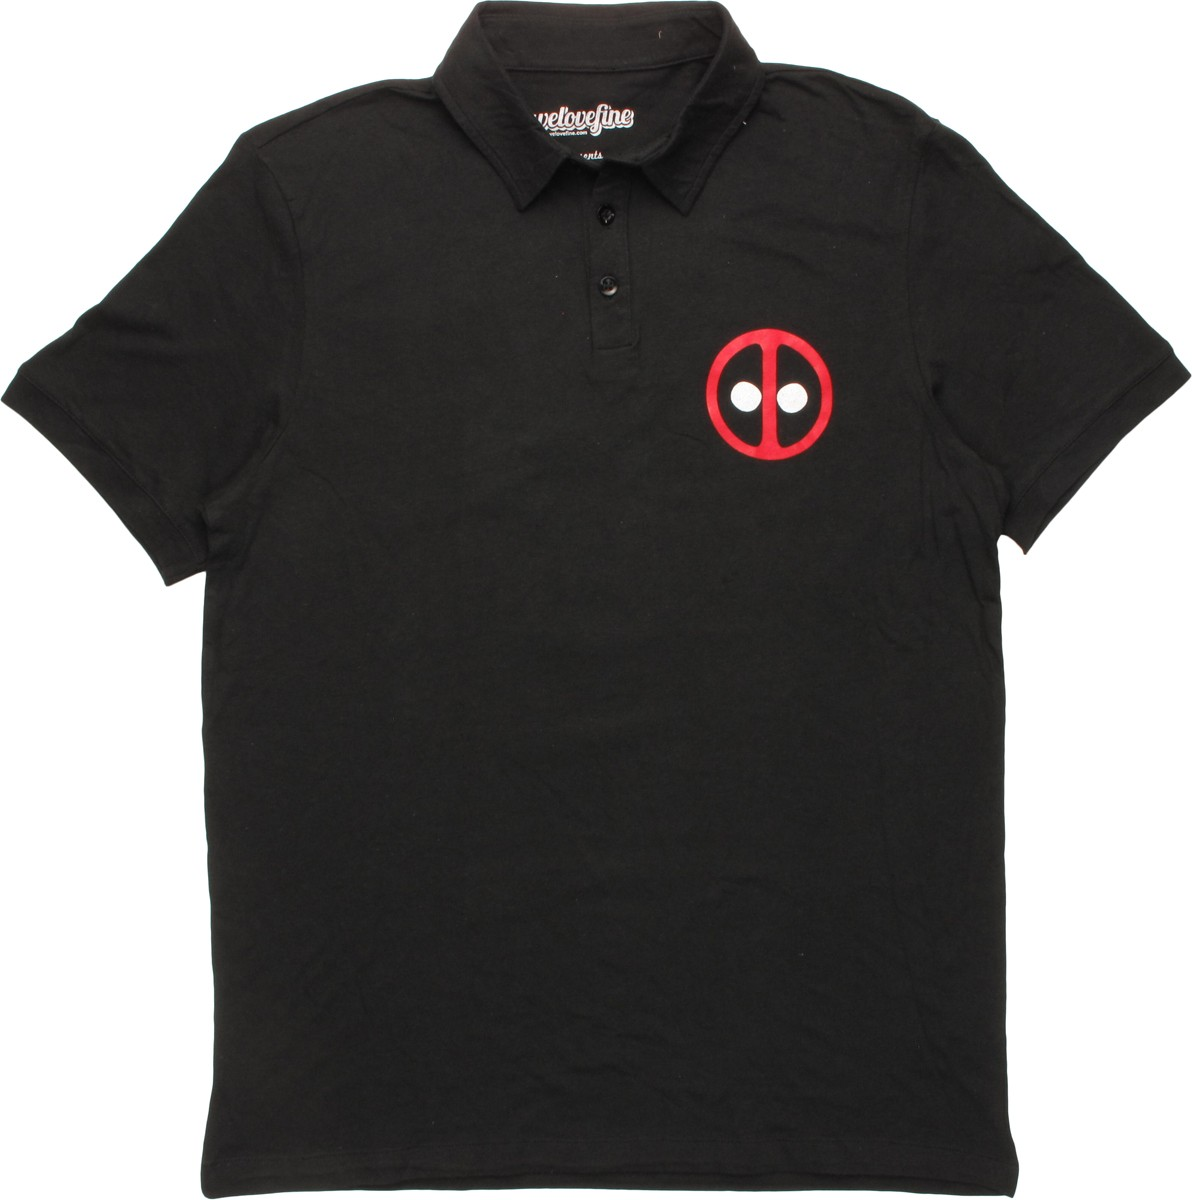 deadpool screen printed logo polo shirt